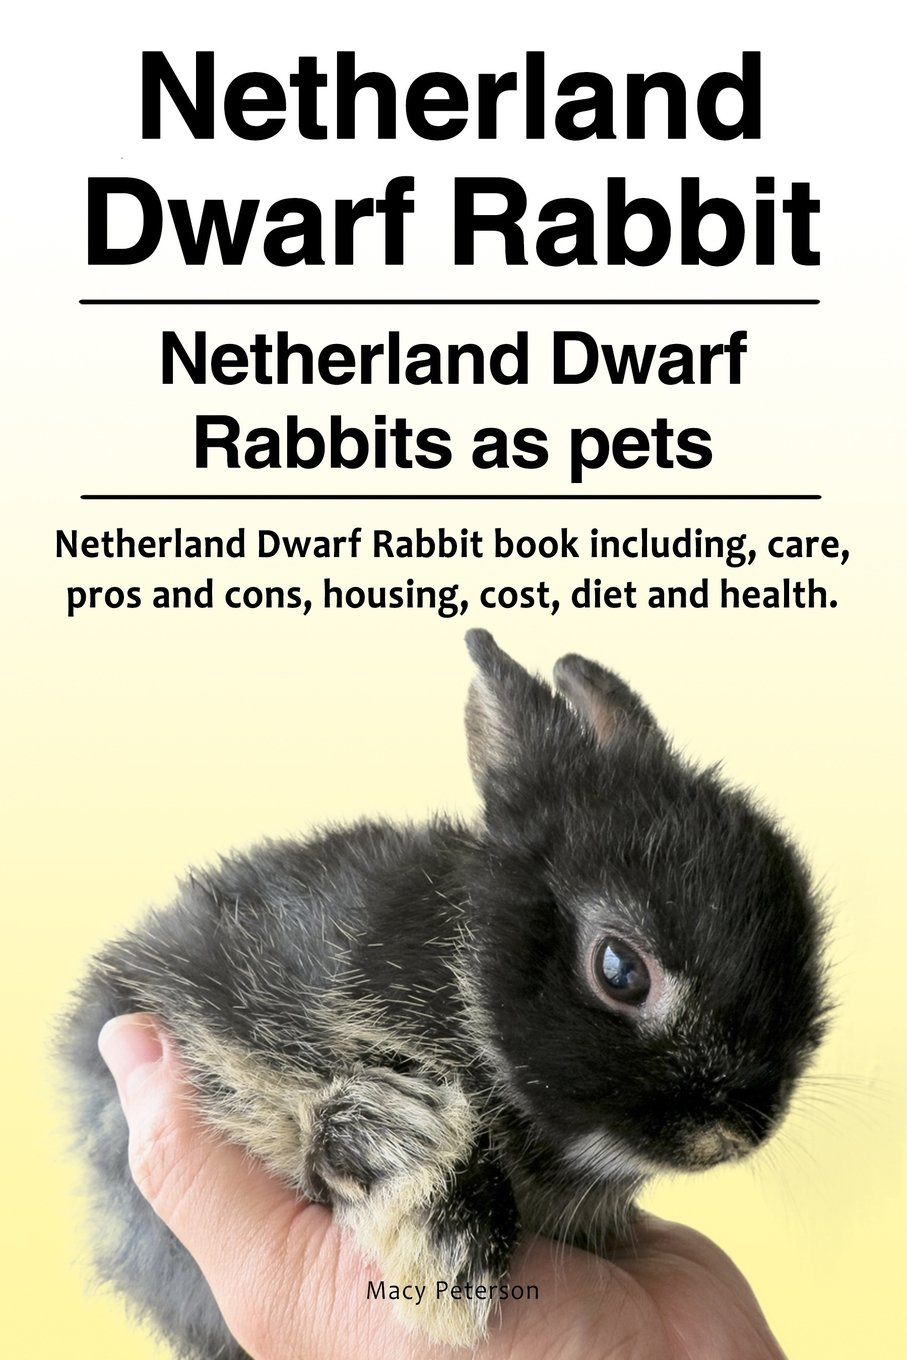 Netherland Dwarf Rabbit Netherland Dwarf Rabbits As Pets Netherland Dwarf Rabbit Book Including Pros And Cons Care Housing Cost Diet And Health Amazon Co Uk Peterson Macy 9781910861530 Books